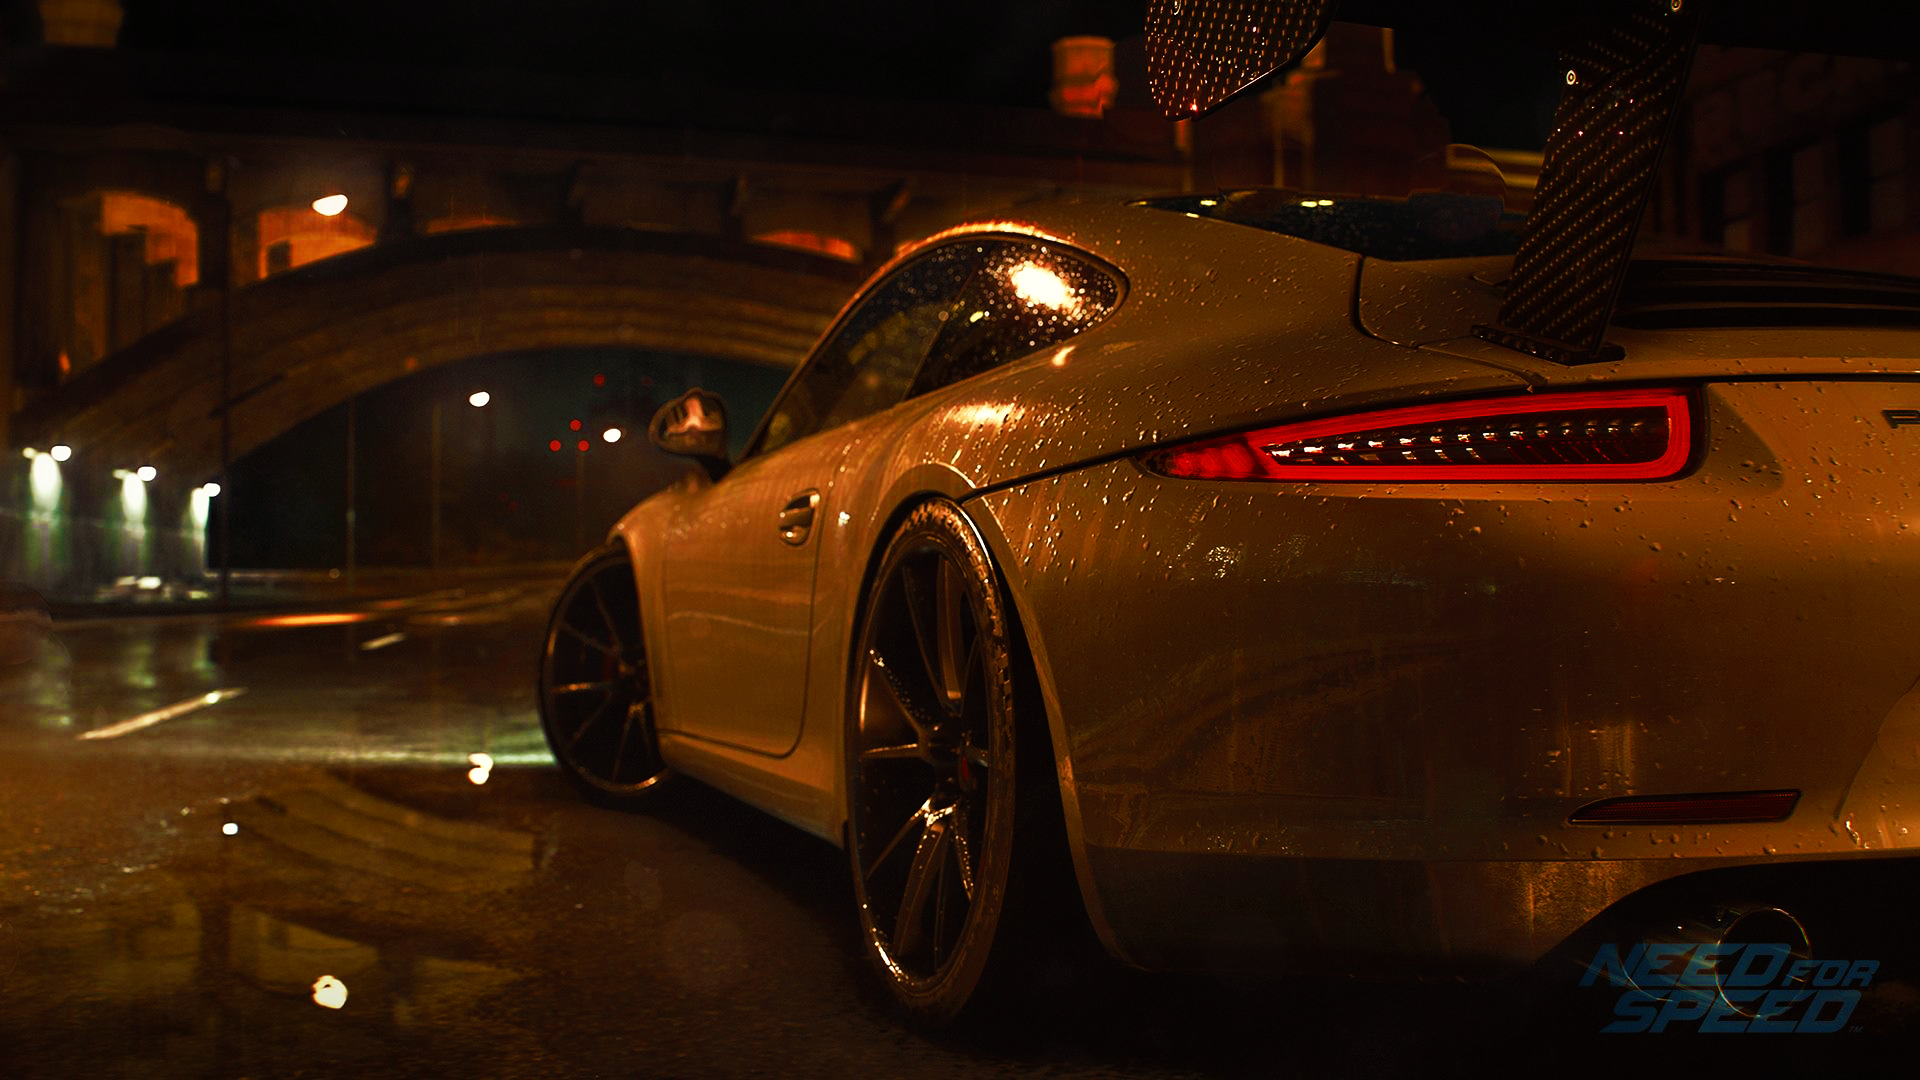 Need for speed 2015 full hd wallpaper and background image for Need for speed wallpaper